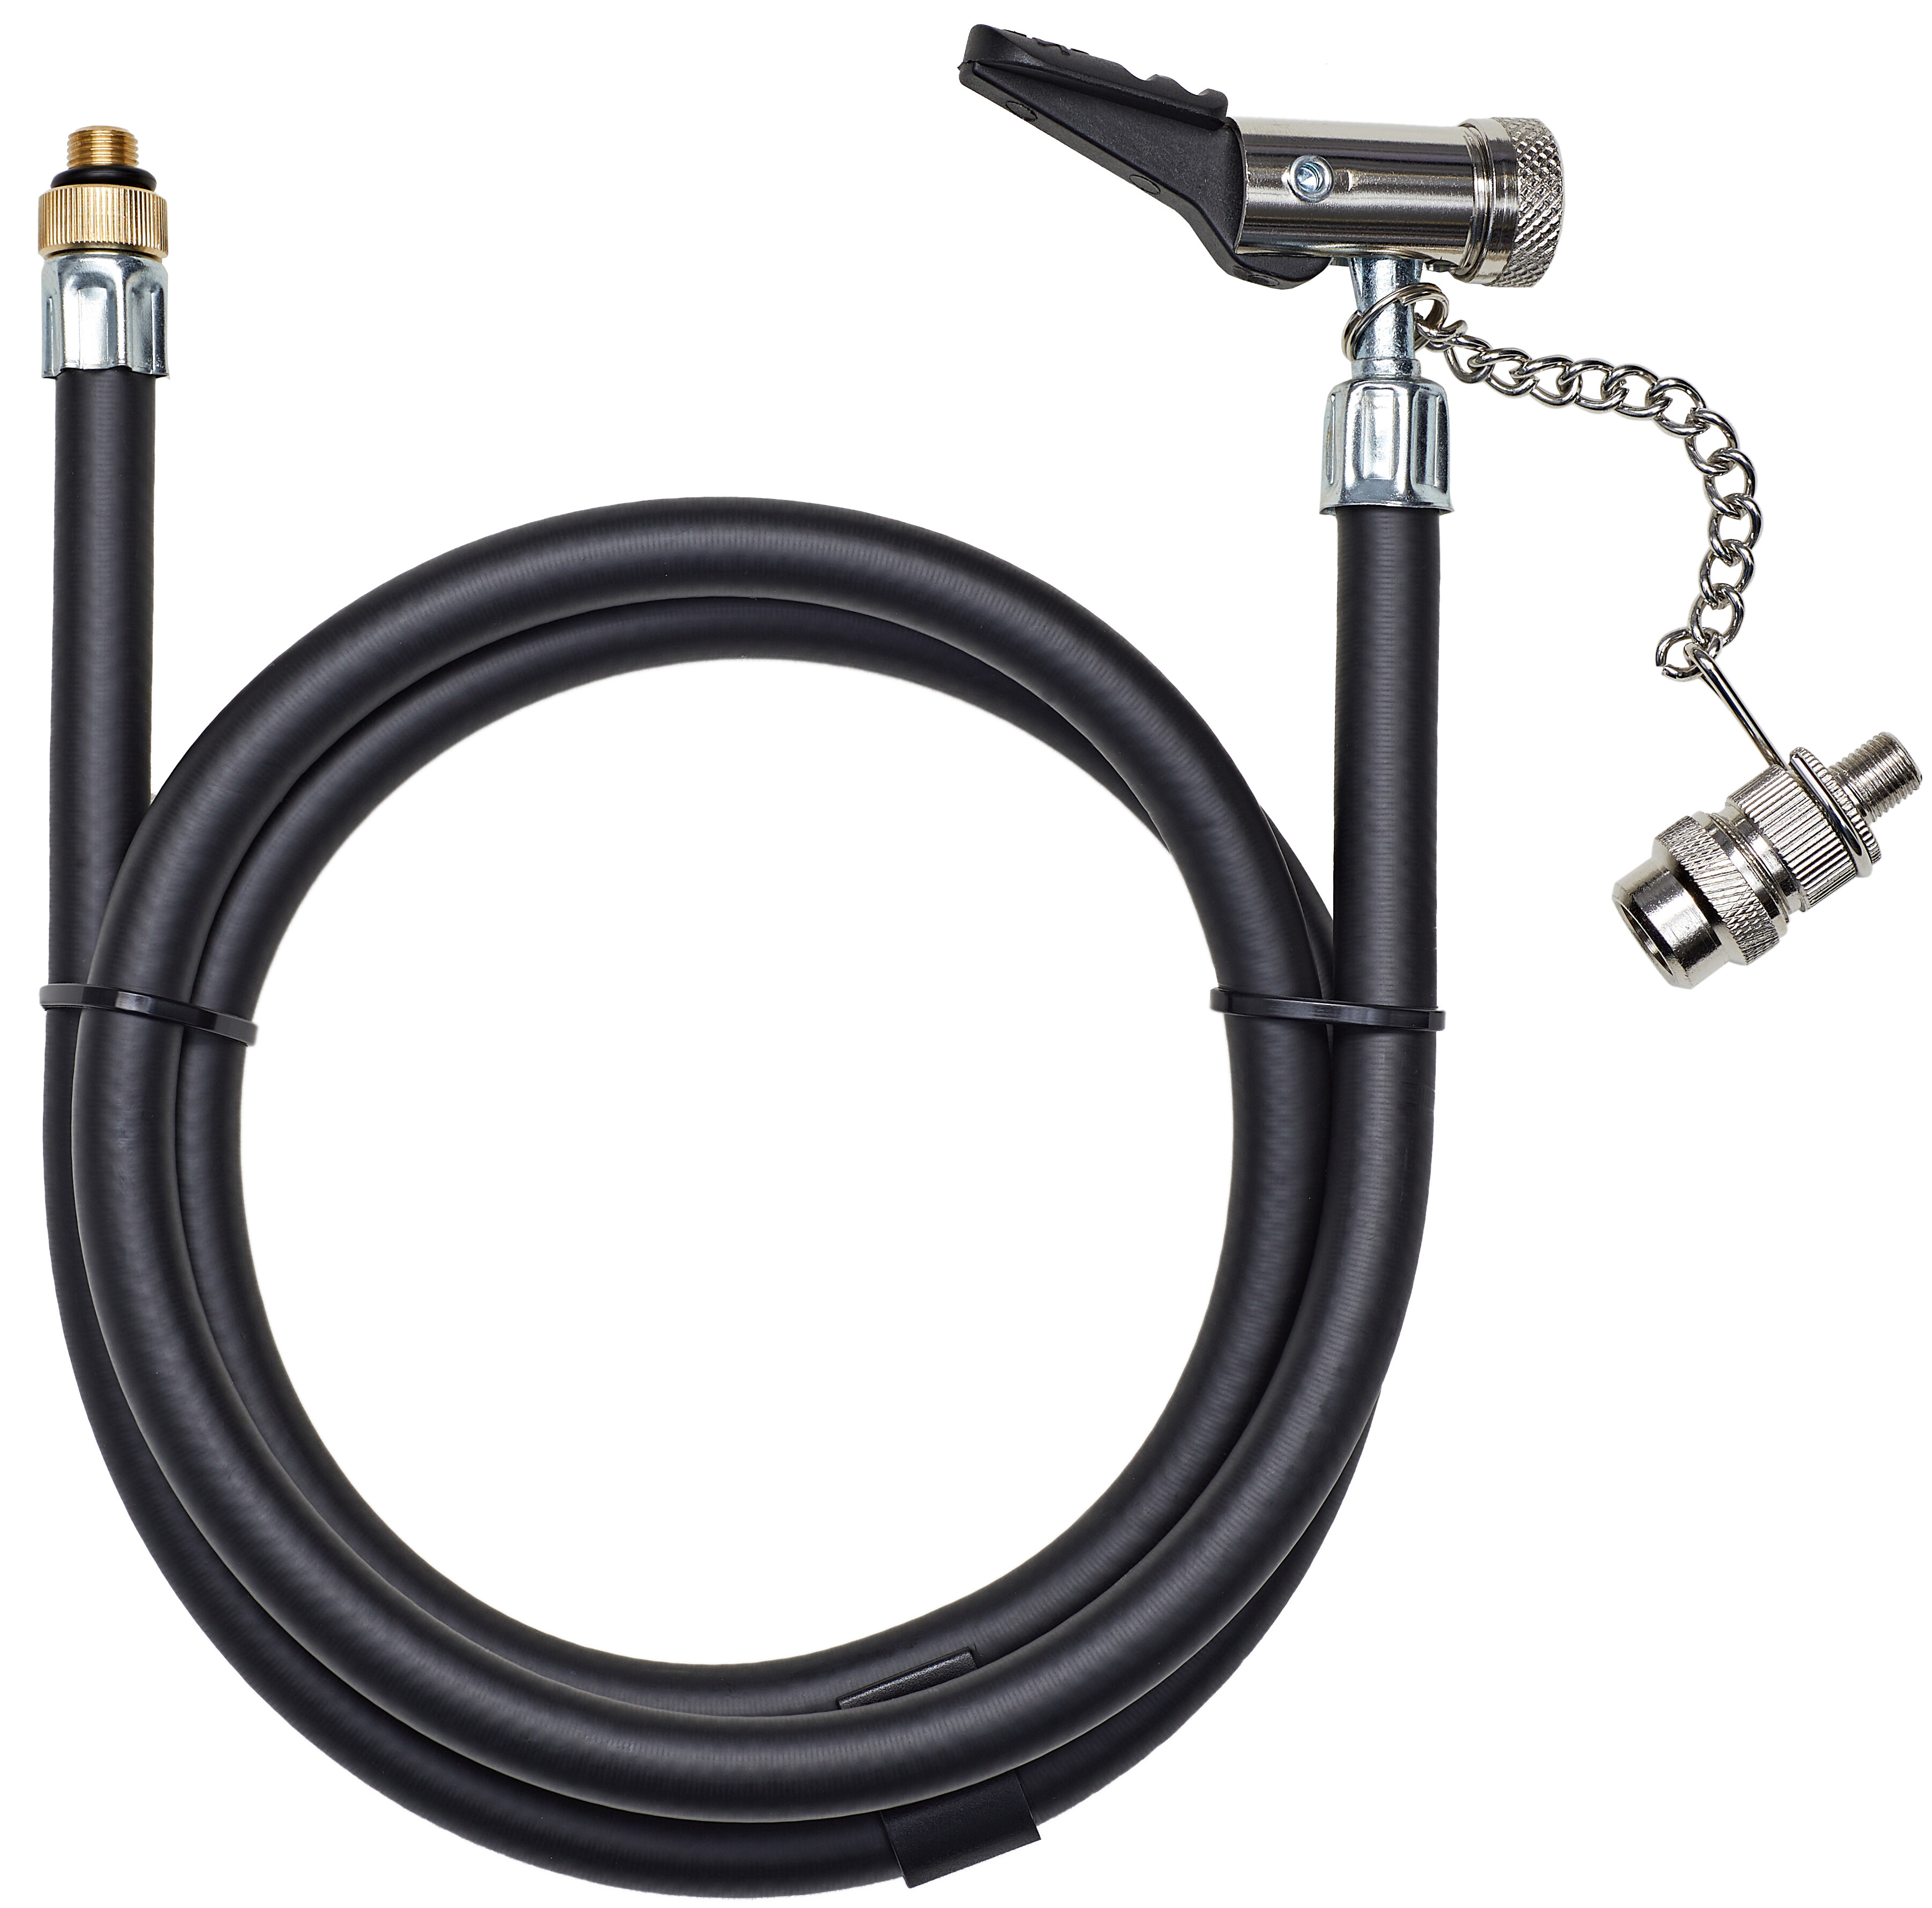 SKS Bike pump accessories tube with connector nipple for racing compressor